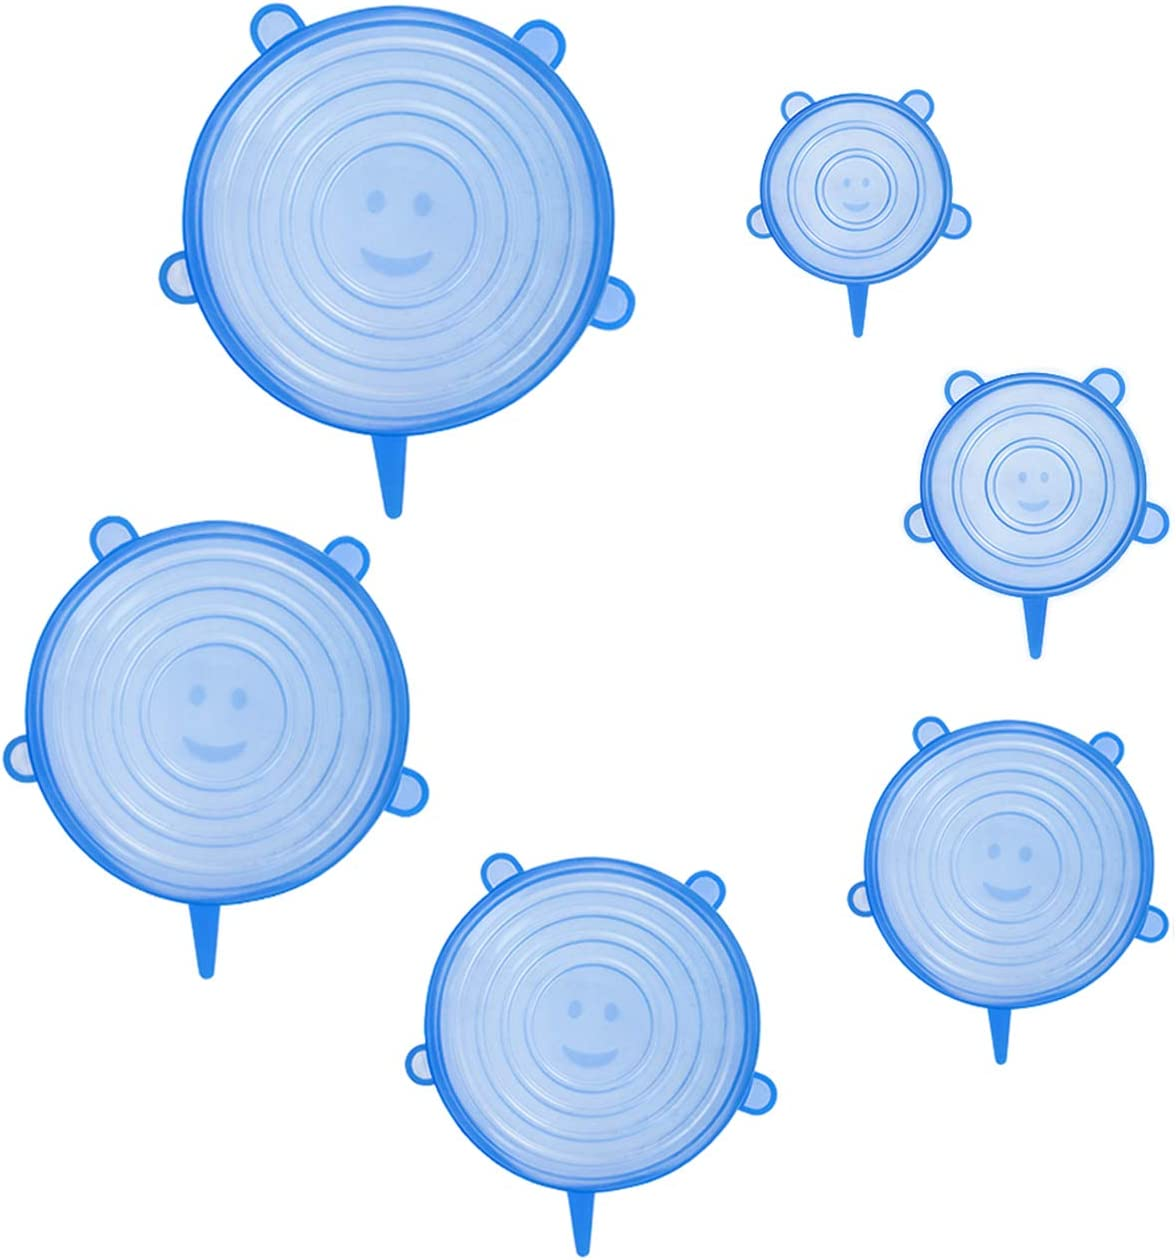 Silicone Stretch Lids Upgraded 6 Pack Various Sizes Rubber Stretchy Miracle Lid Reusable Elastic Bowl Cover for Food Storage Leftover Savers Fit Container Dish Cup (6, Blue)